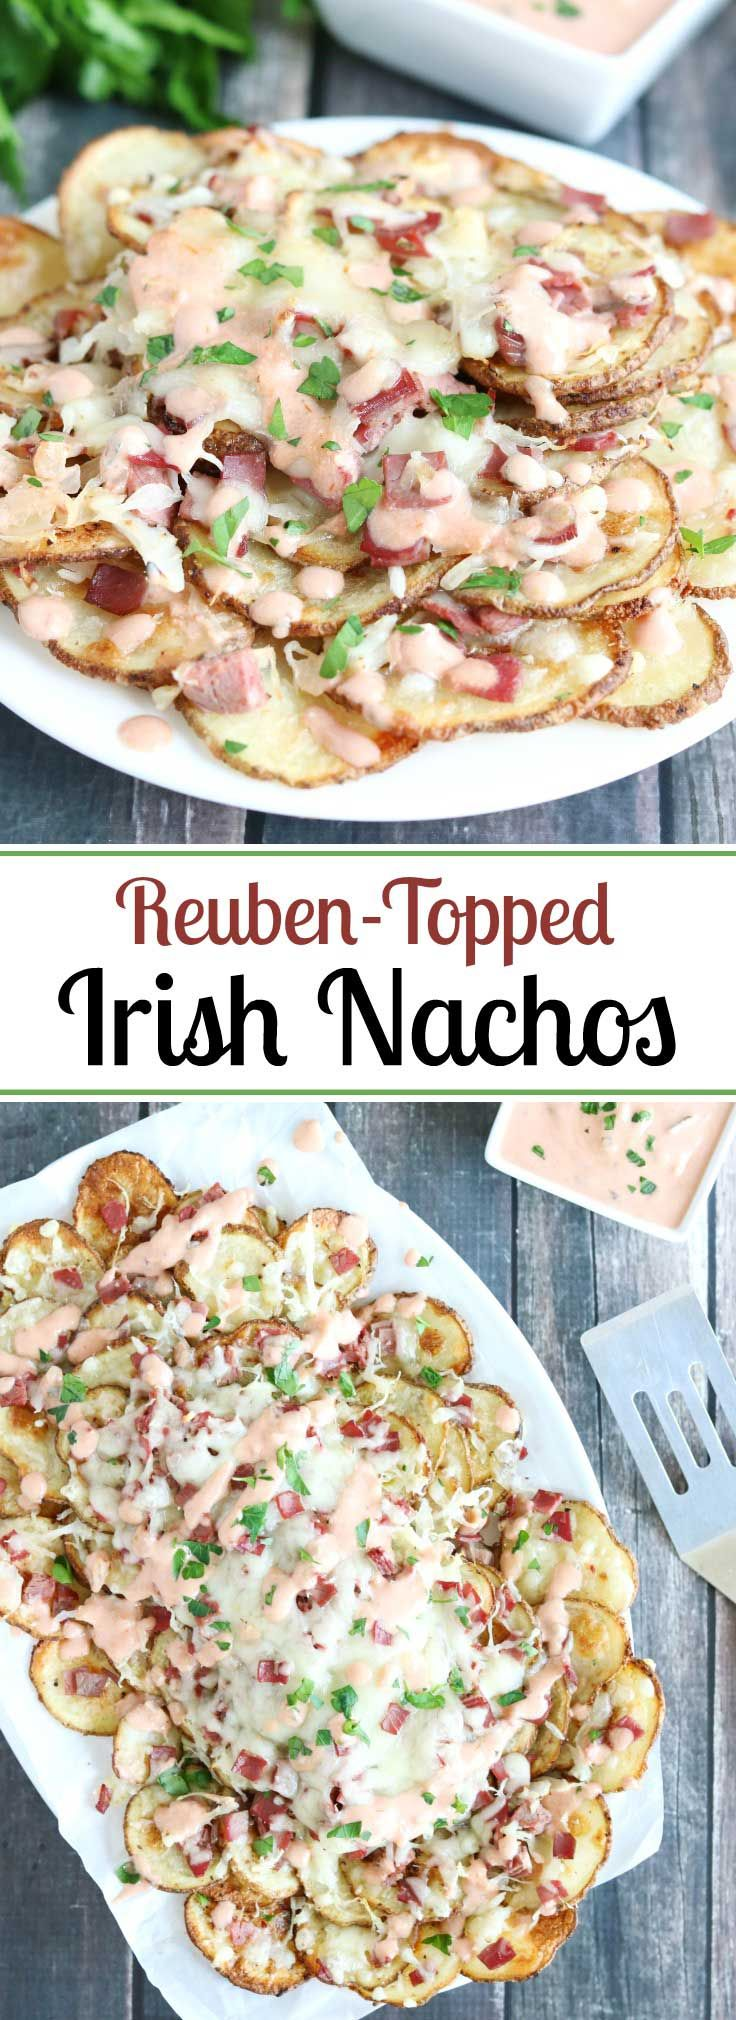 """Seasoned, oven-baked potato chips and classic reuben toppings! These Reuben-Topped Irish Nachos feature all the ever-popular flavors of a reuben sandwich, in an easy """"nacho"""" recipe! Easy to make, seriously delicious! A perfect St. Patrick's Day recipe, and also a great game day snack recipe ... or for snacks and appetizers ANY day! Bonus: this Irish Nacho recipe is so much healthier, too! You'll be surprised!   www.TwoHealthyKitchens.com"""